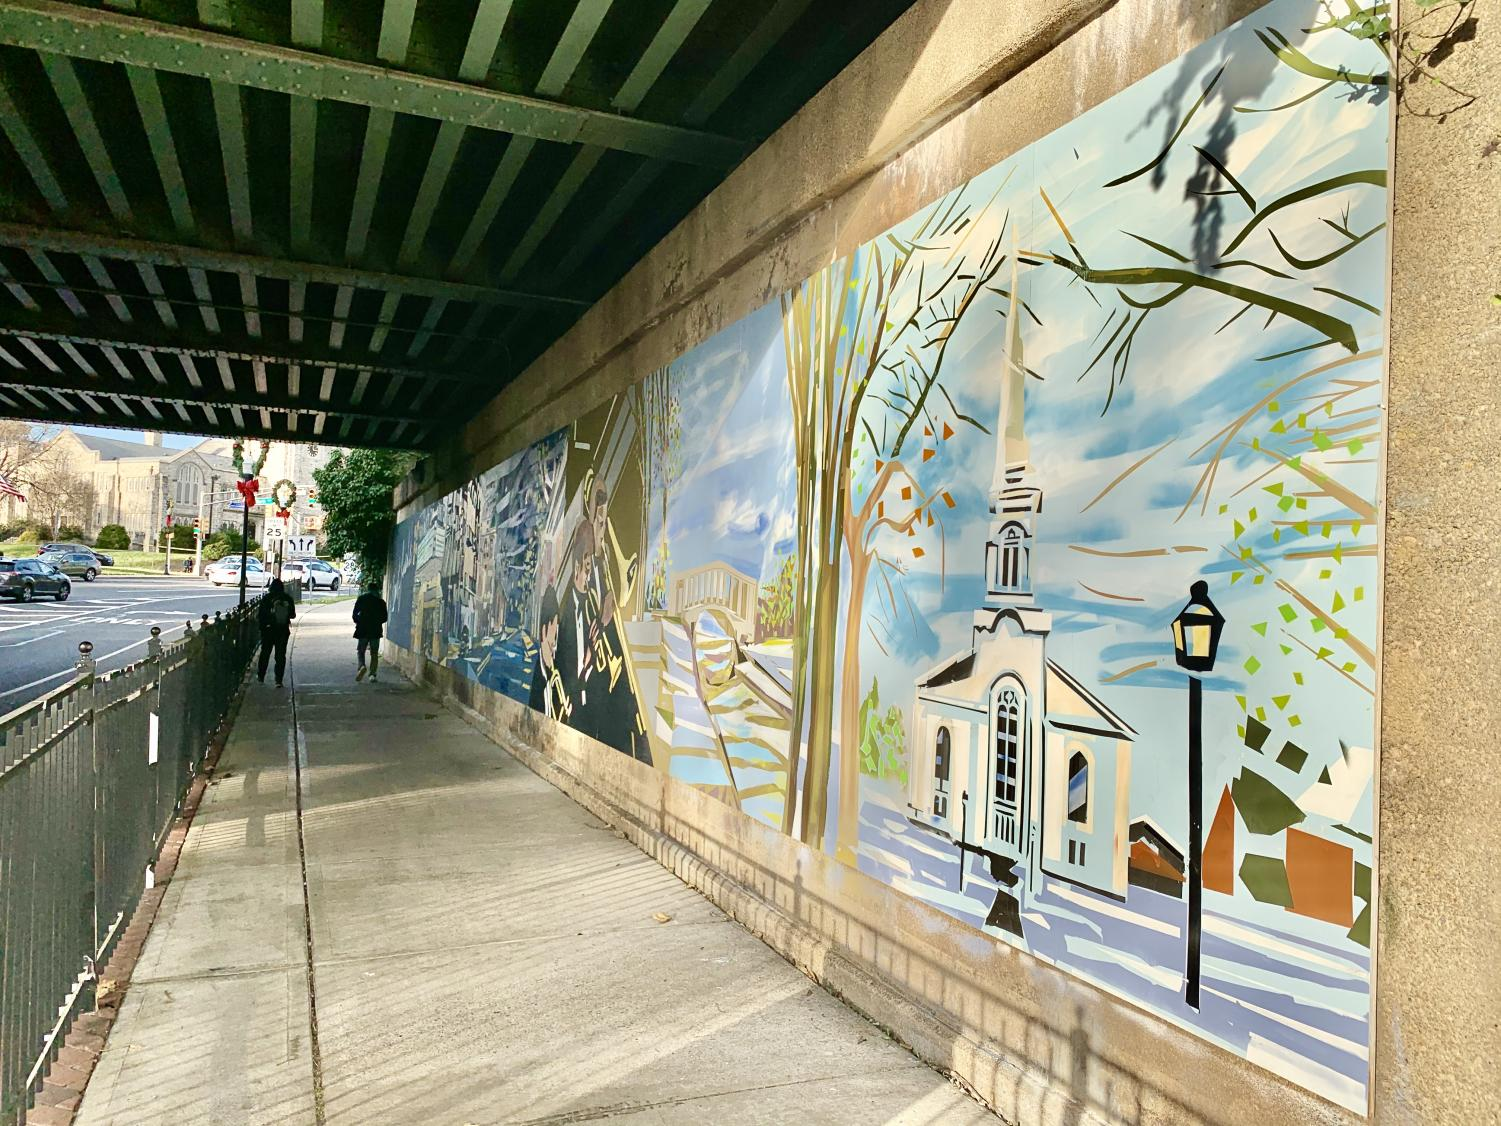 Mural displays the town's gems, including the Presbyterian Church